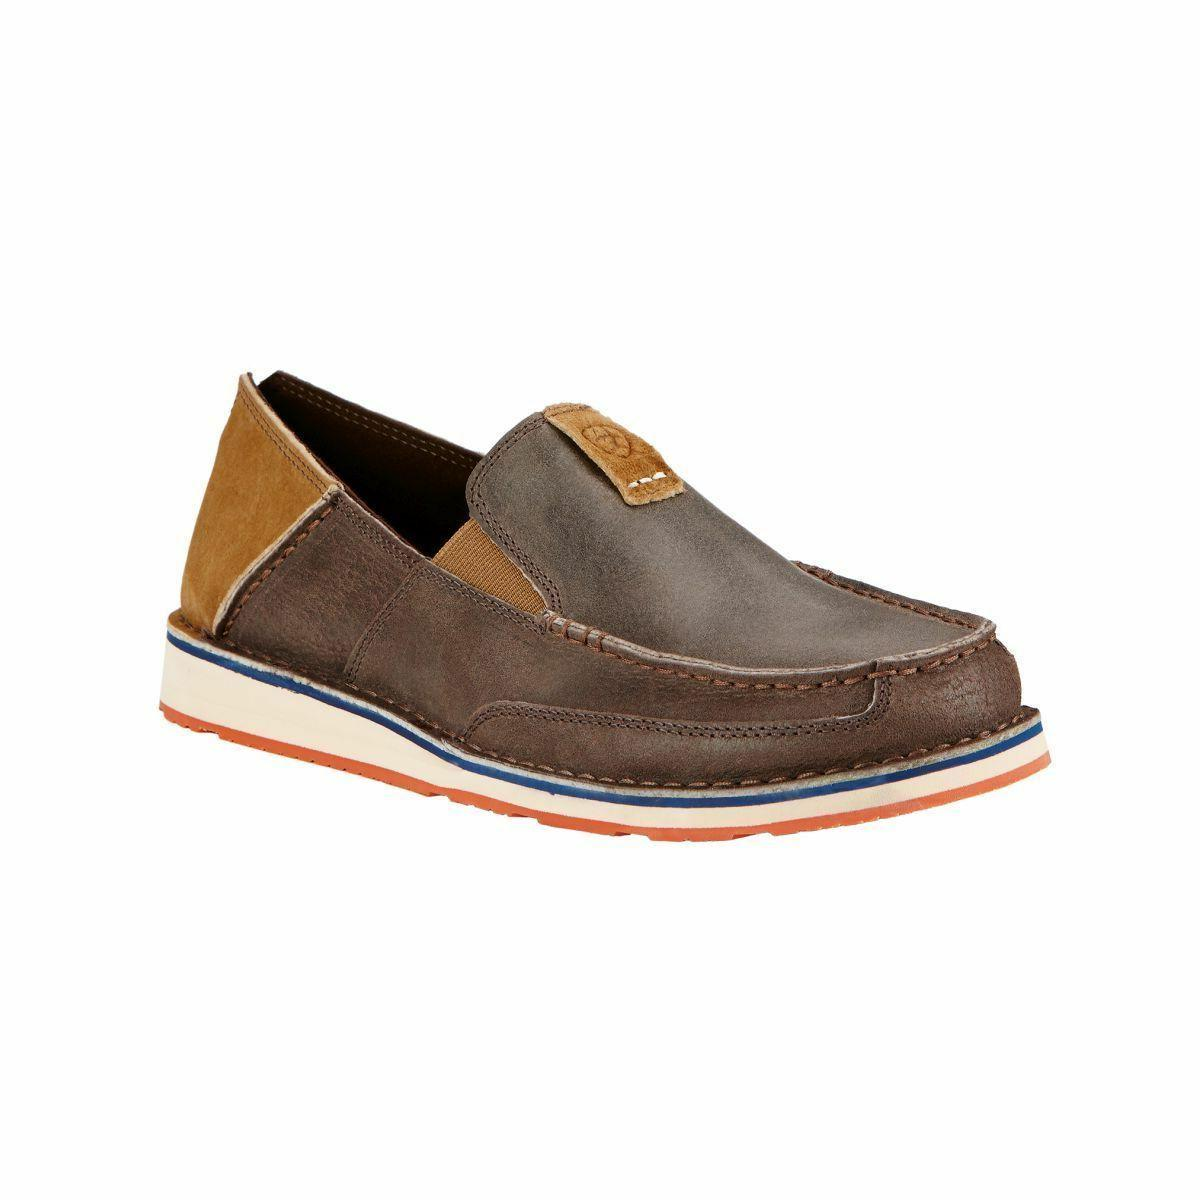 men s cruiser loafer slip on shoes